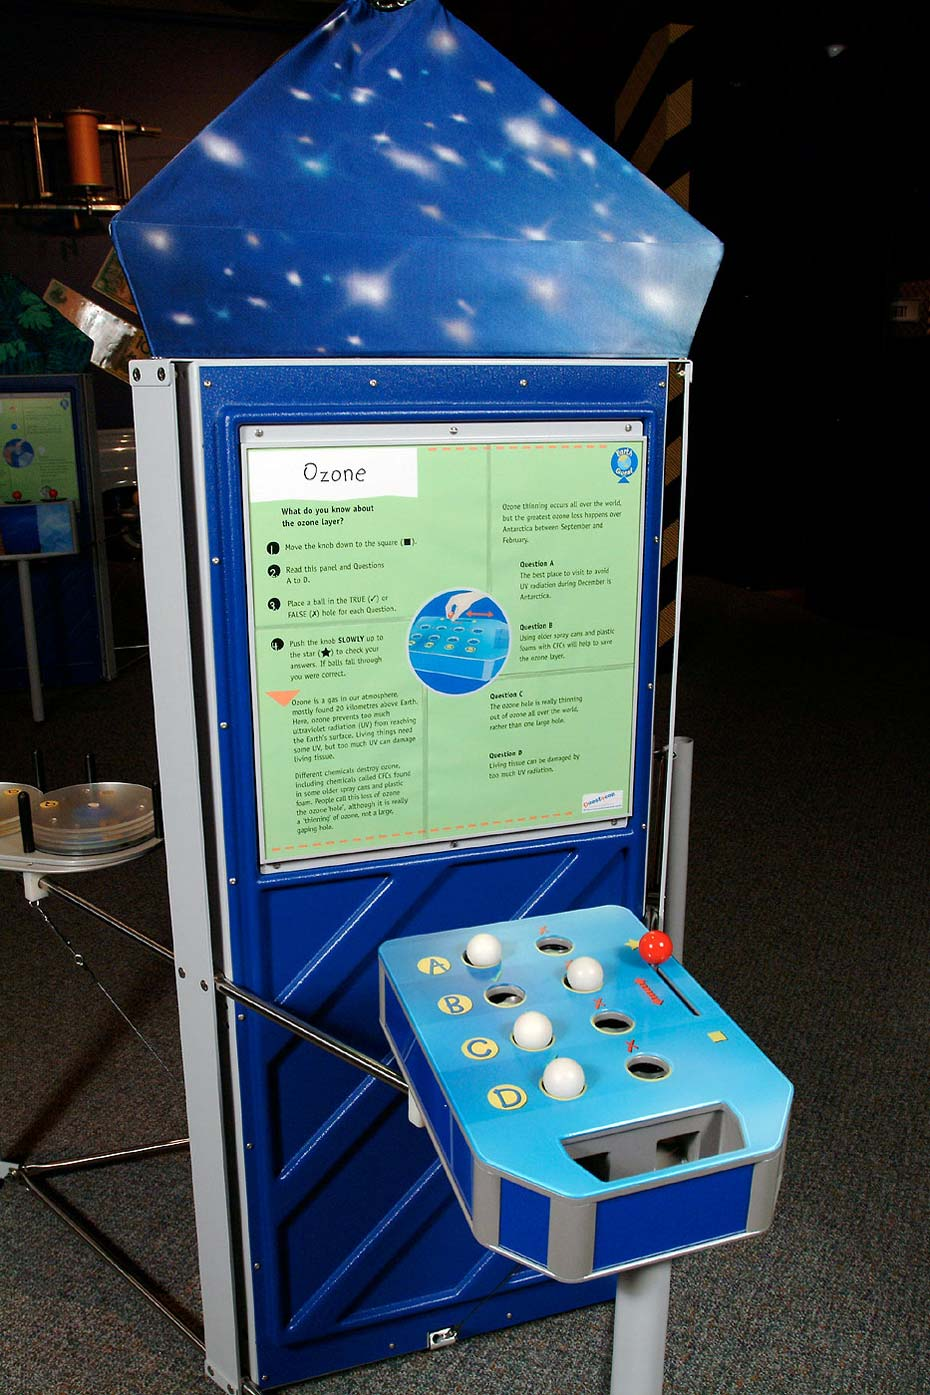 A blue and green exhibiti with a vertical information panel at the back and a horizontal table with white balls, a red lever and the letters 'A', 'B', 'C' and 'D' displayed.